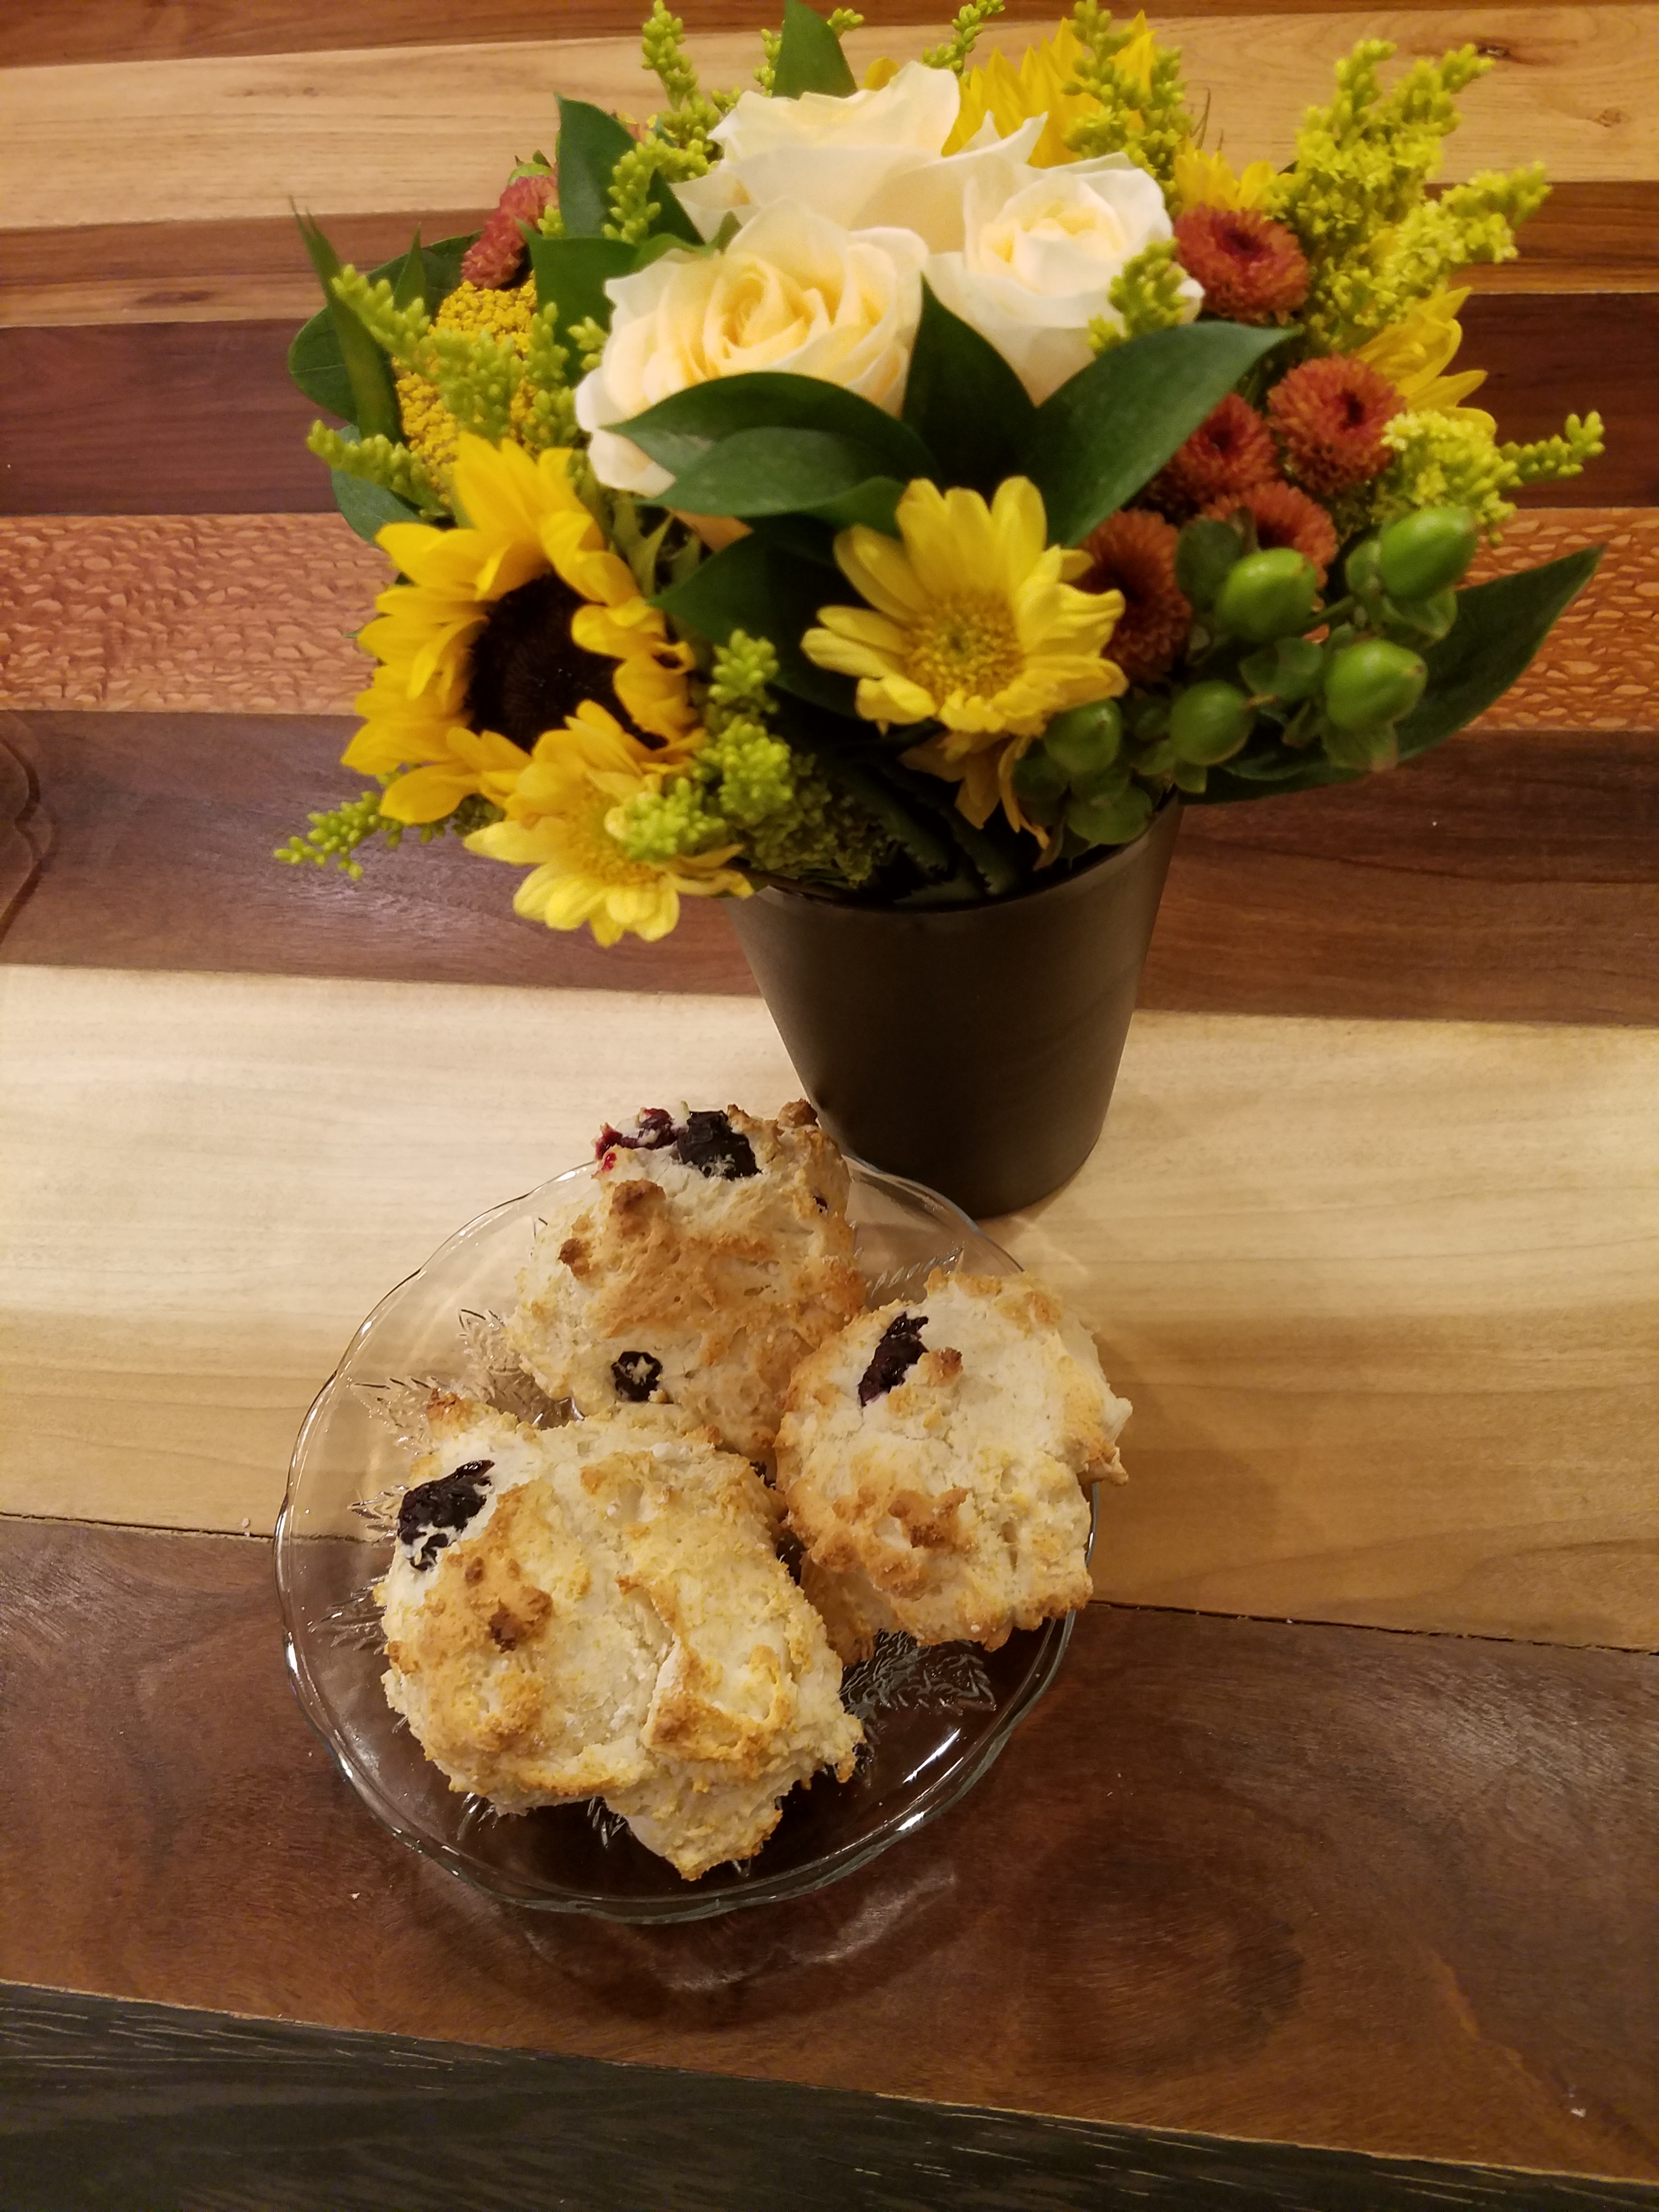 """Bisquick: A Justifiable Exception to the """"Low on the Food Chain"""" Rule – AKA – Don't These Blueberry Biscuits Look Good?"""